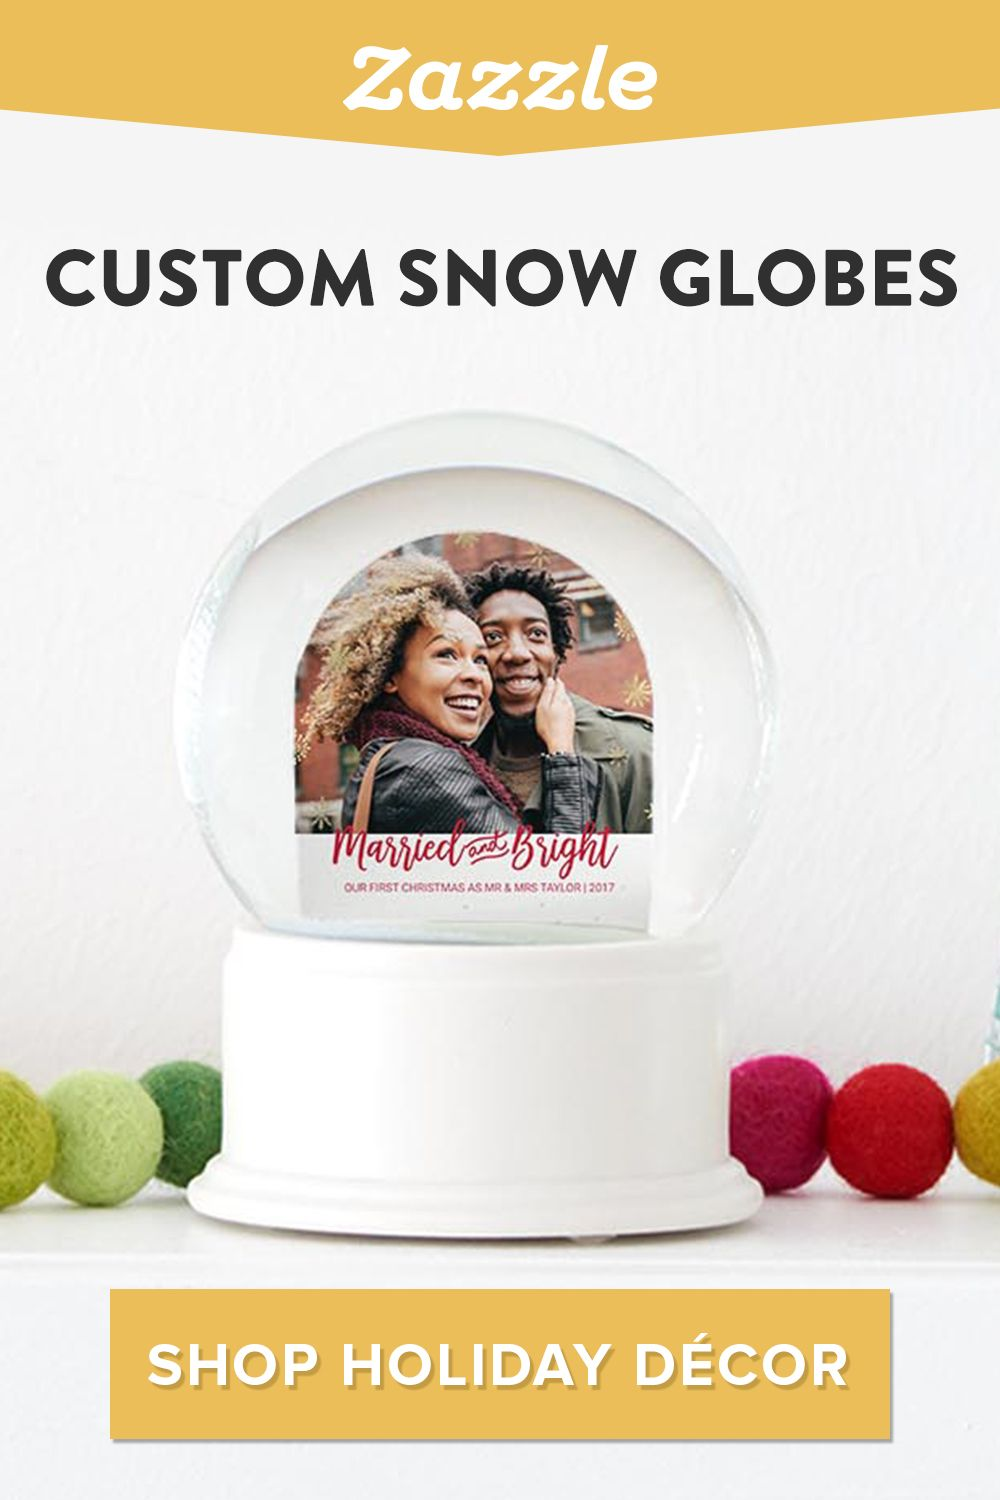 Create a custom snowglobe for your own holiday decor or as a one-of-a-kind gift. Shop Zazzle for holiday cards, decor, and gifts.